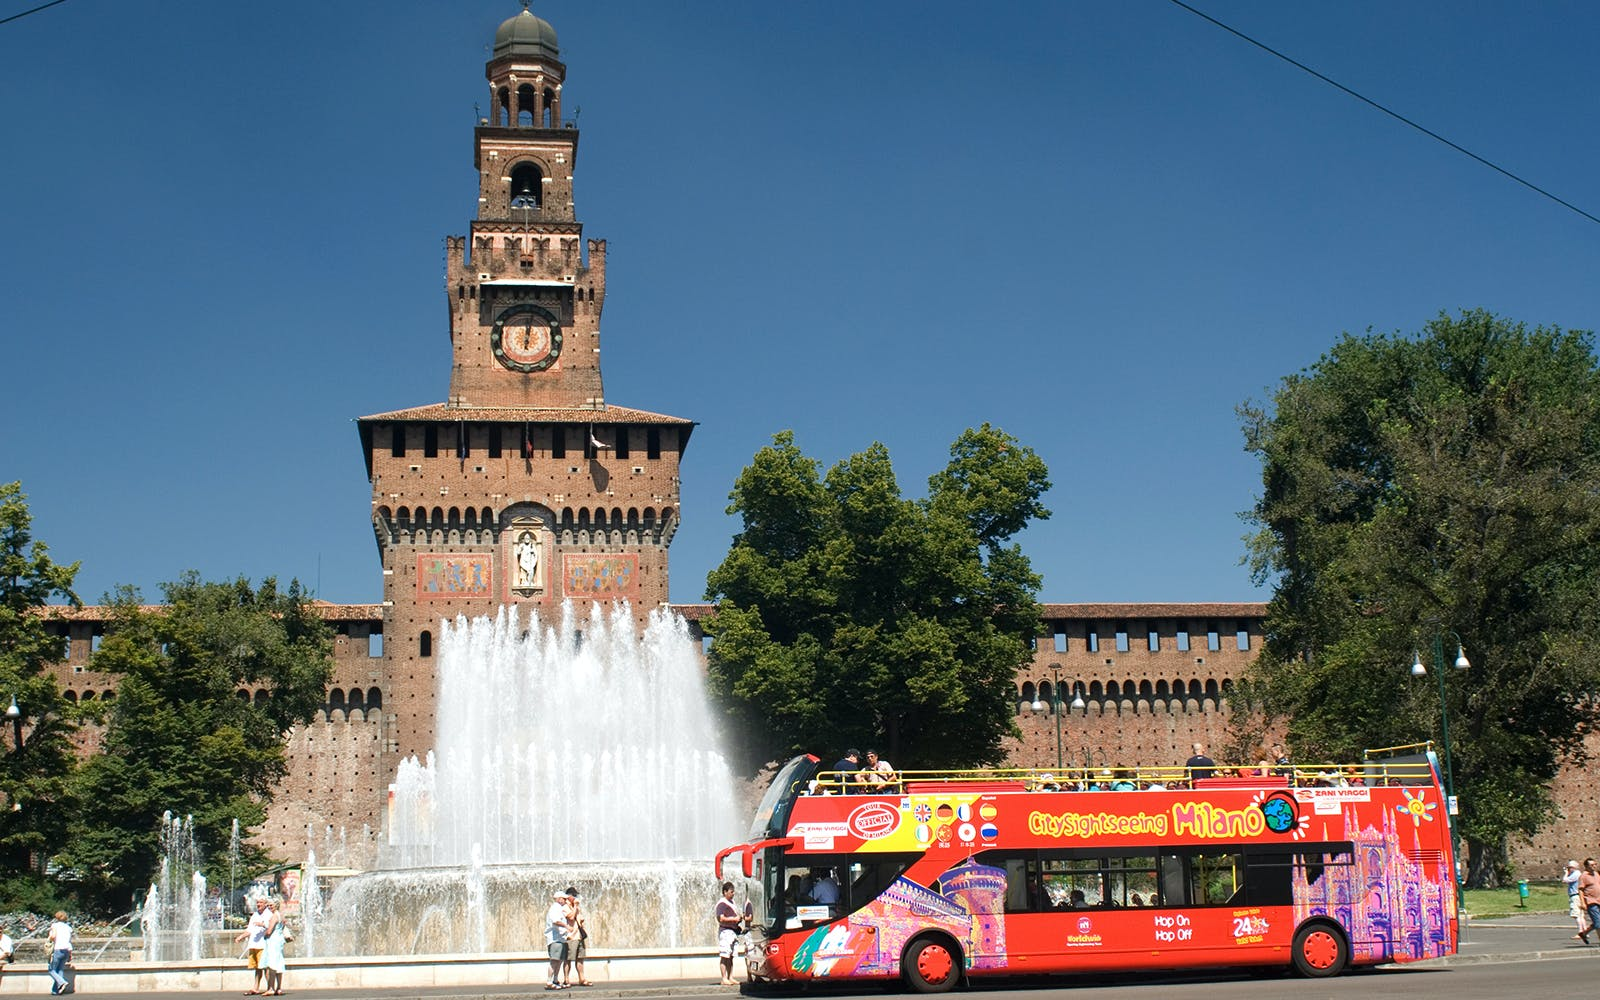 Skip The Line Duomo, Rooftop & Museum Tickets and Hop On Hop Off Bus Tour